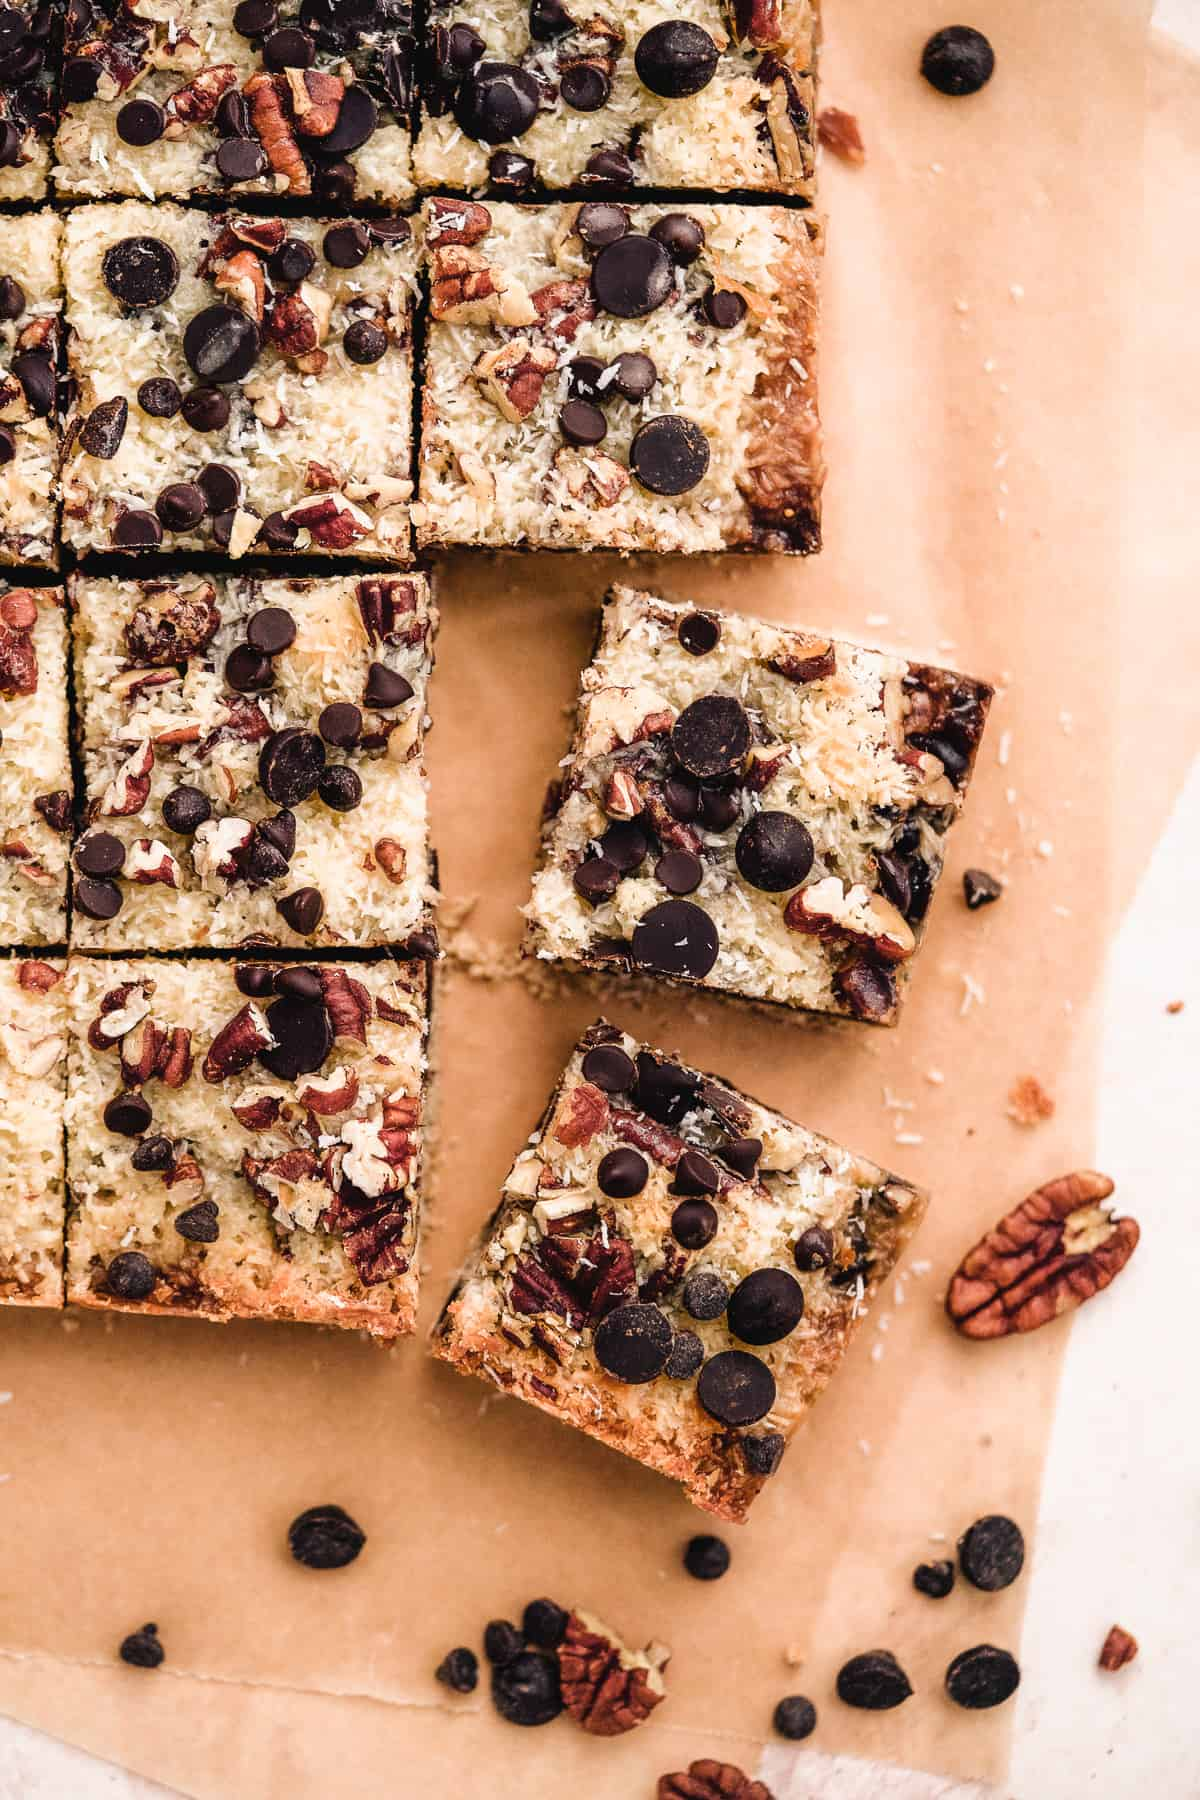 Overhead view of freshly baked Toasted Oat Seven Layer Magic Cookie Bars cut into squares.  Pecans and chocolate chips are sprinkled around.